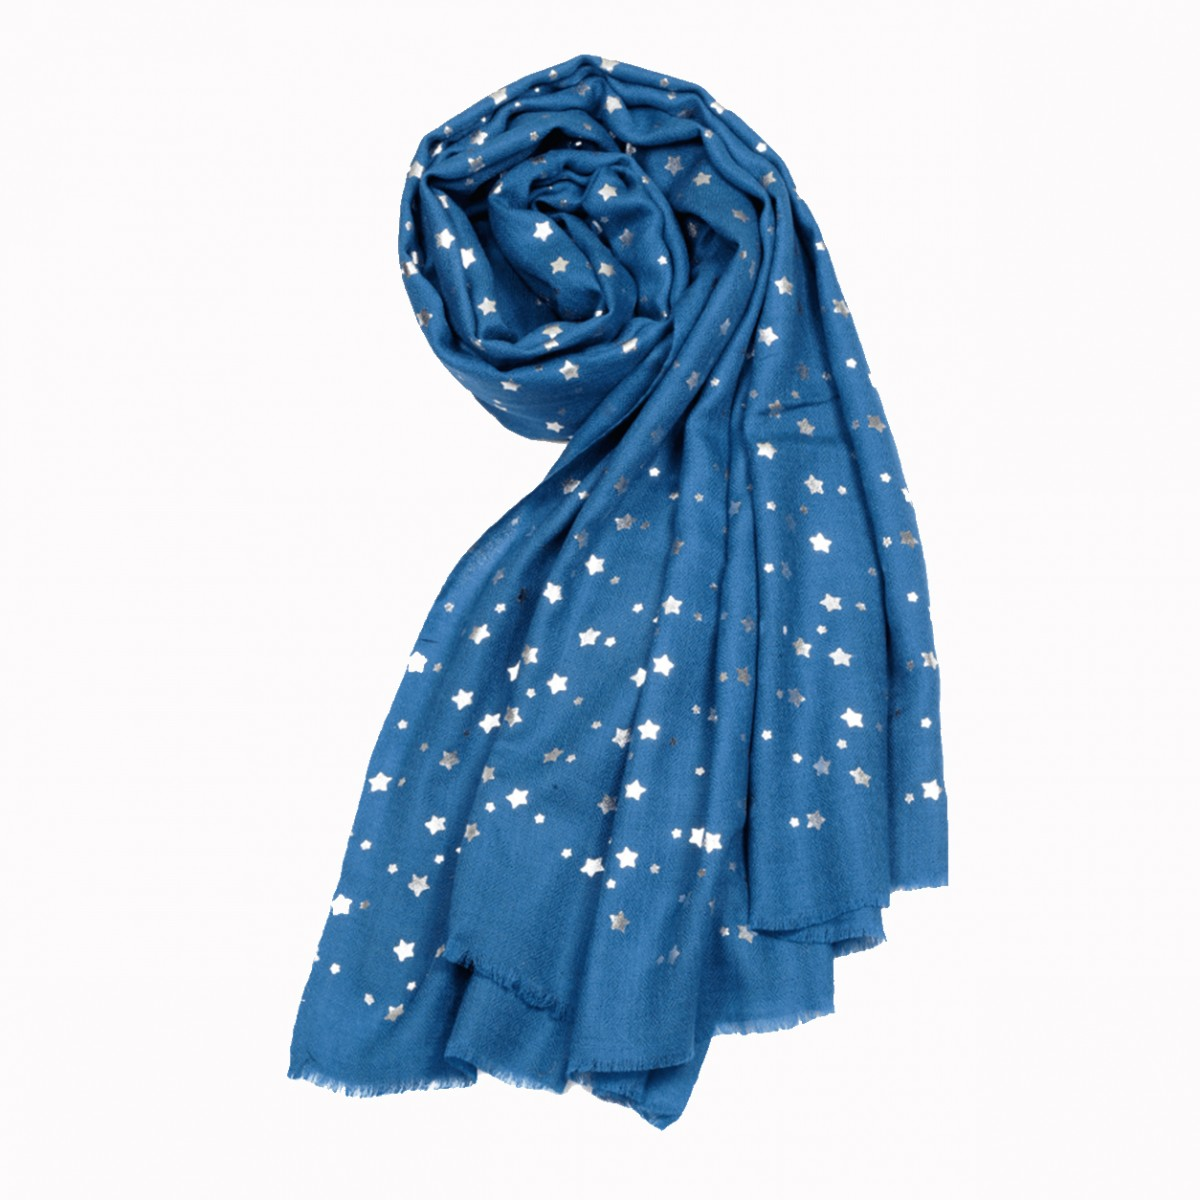 Aegean blue star merino wool shawl